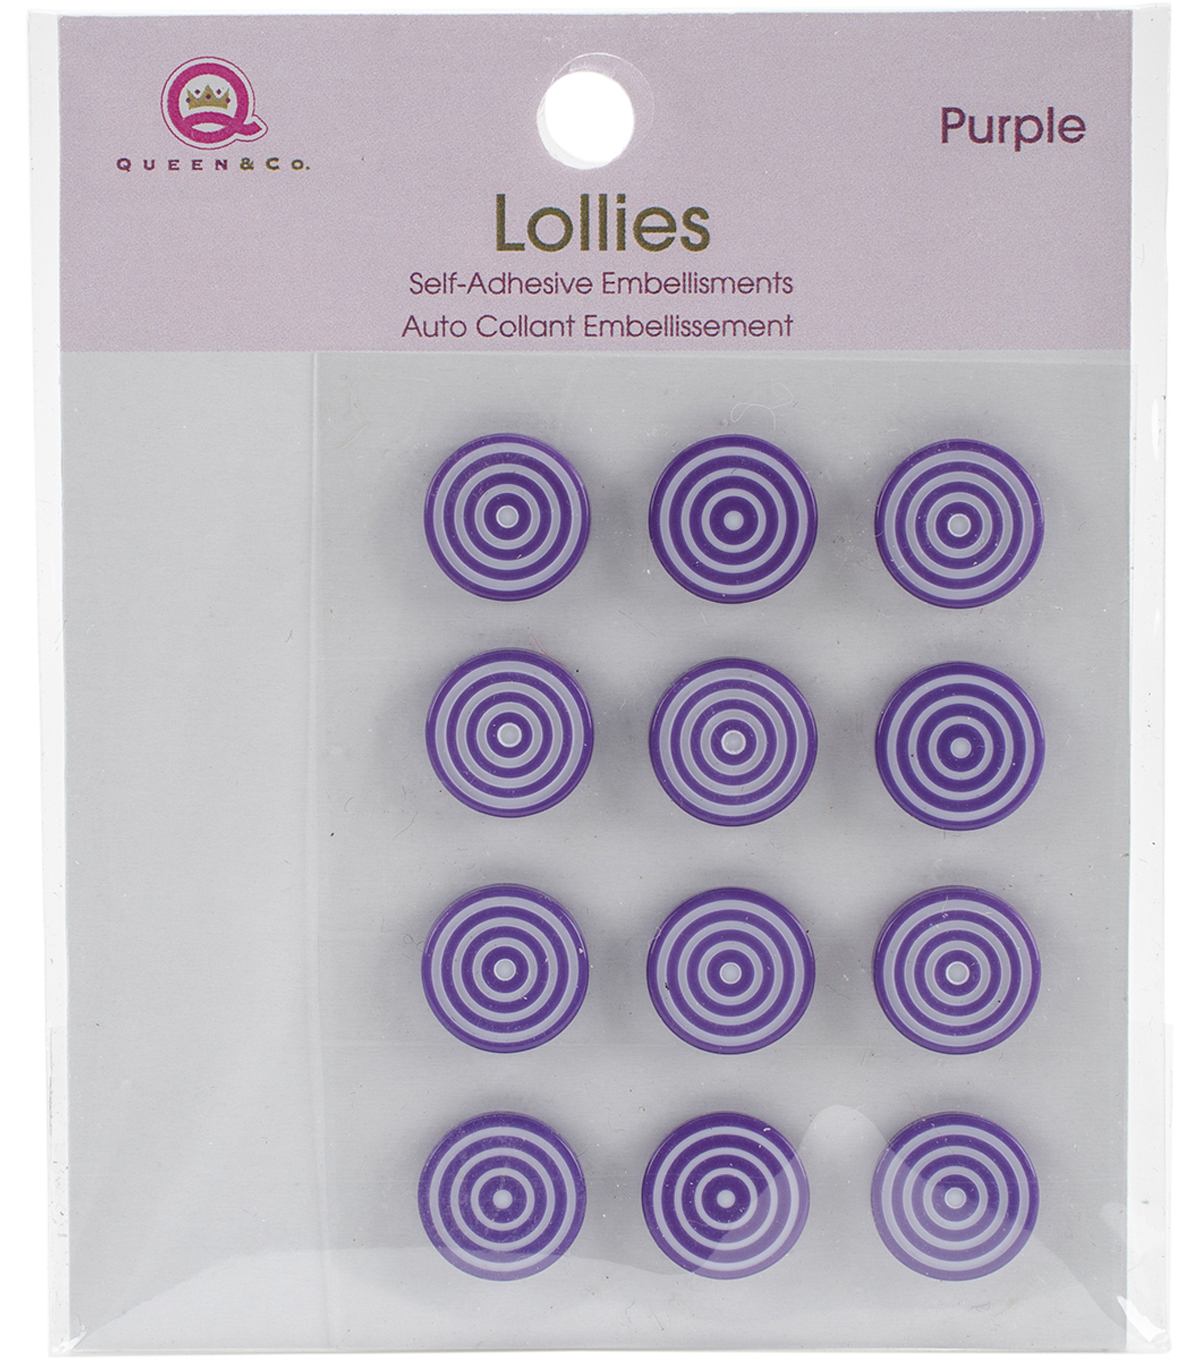 Queen & Co. 12 pk Lollies Self-Adhesive Embellishments-Purple